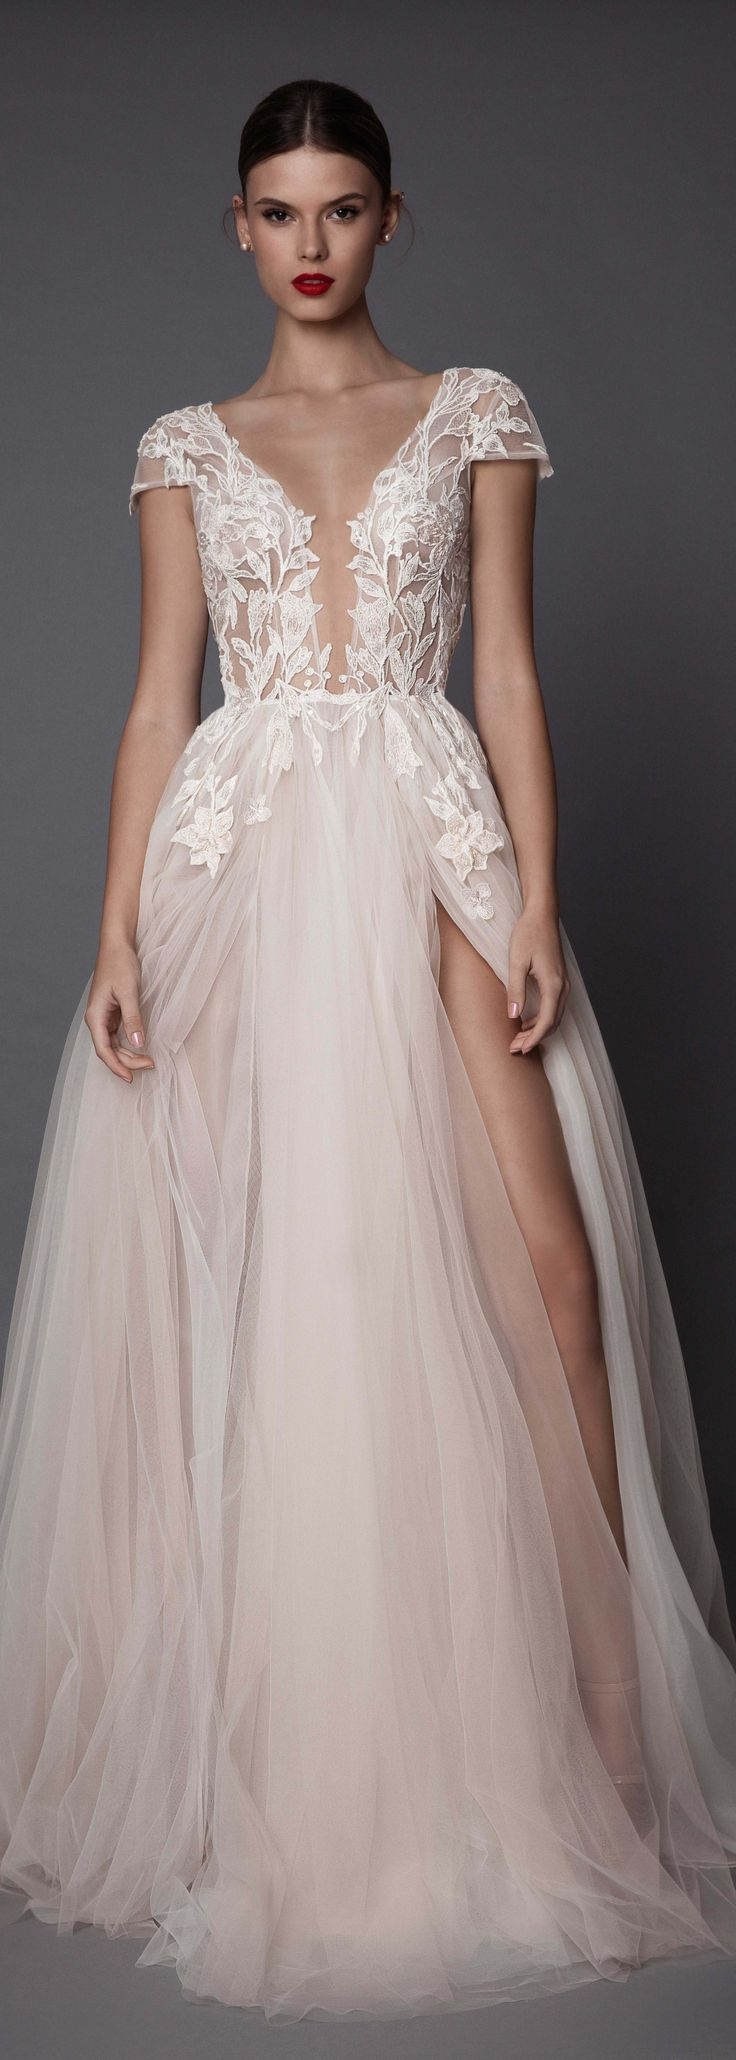 Best 25 Tulle wedding dresses ideas on Pinterest Perfect